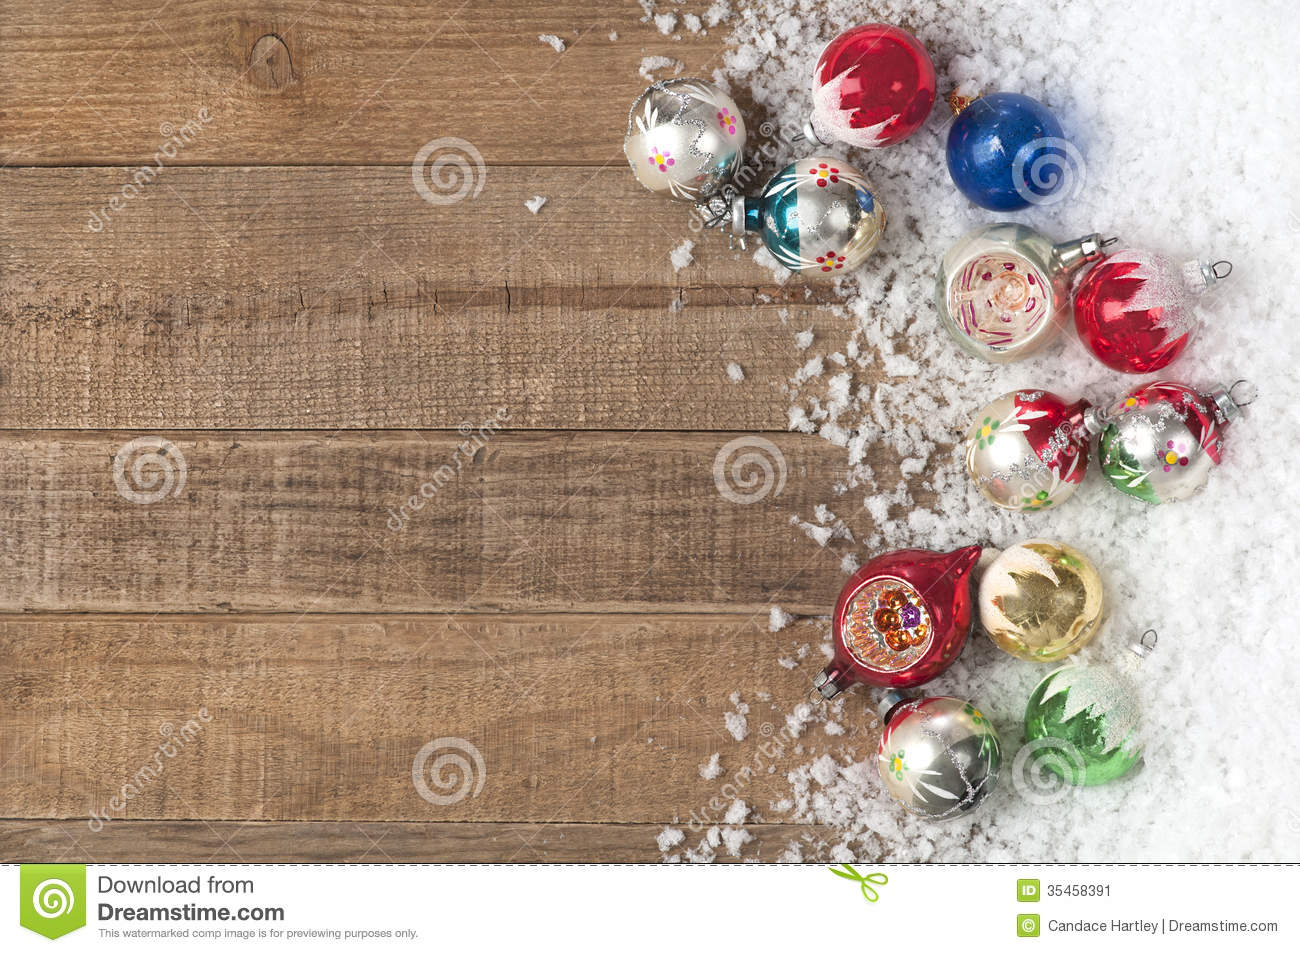 Vintage christmas ornaments in a snowdrift on wood